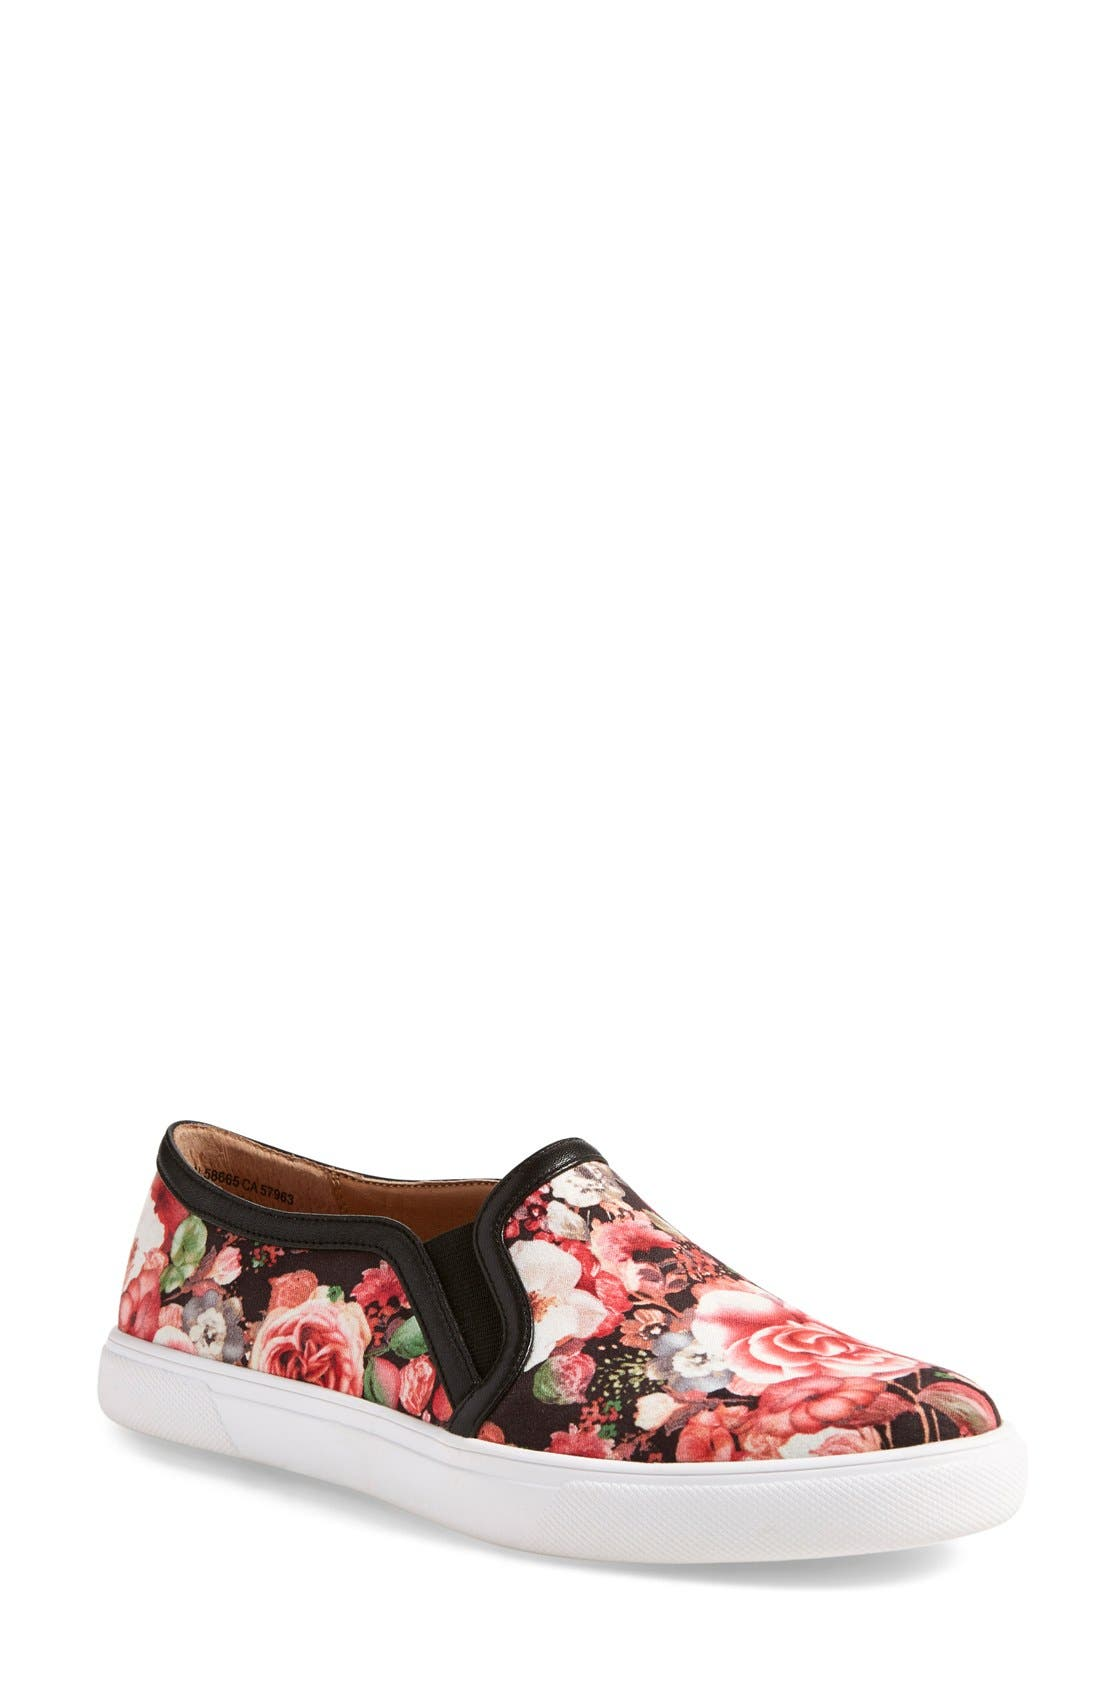 'Turner' Slip-On Sneaker,                         Main,                         color, Rose Floral